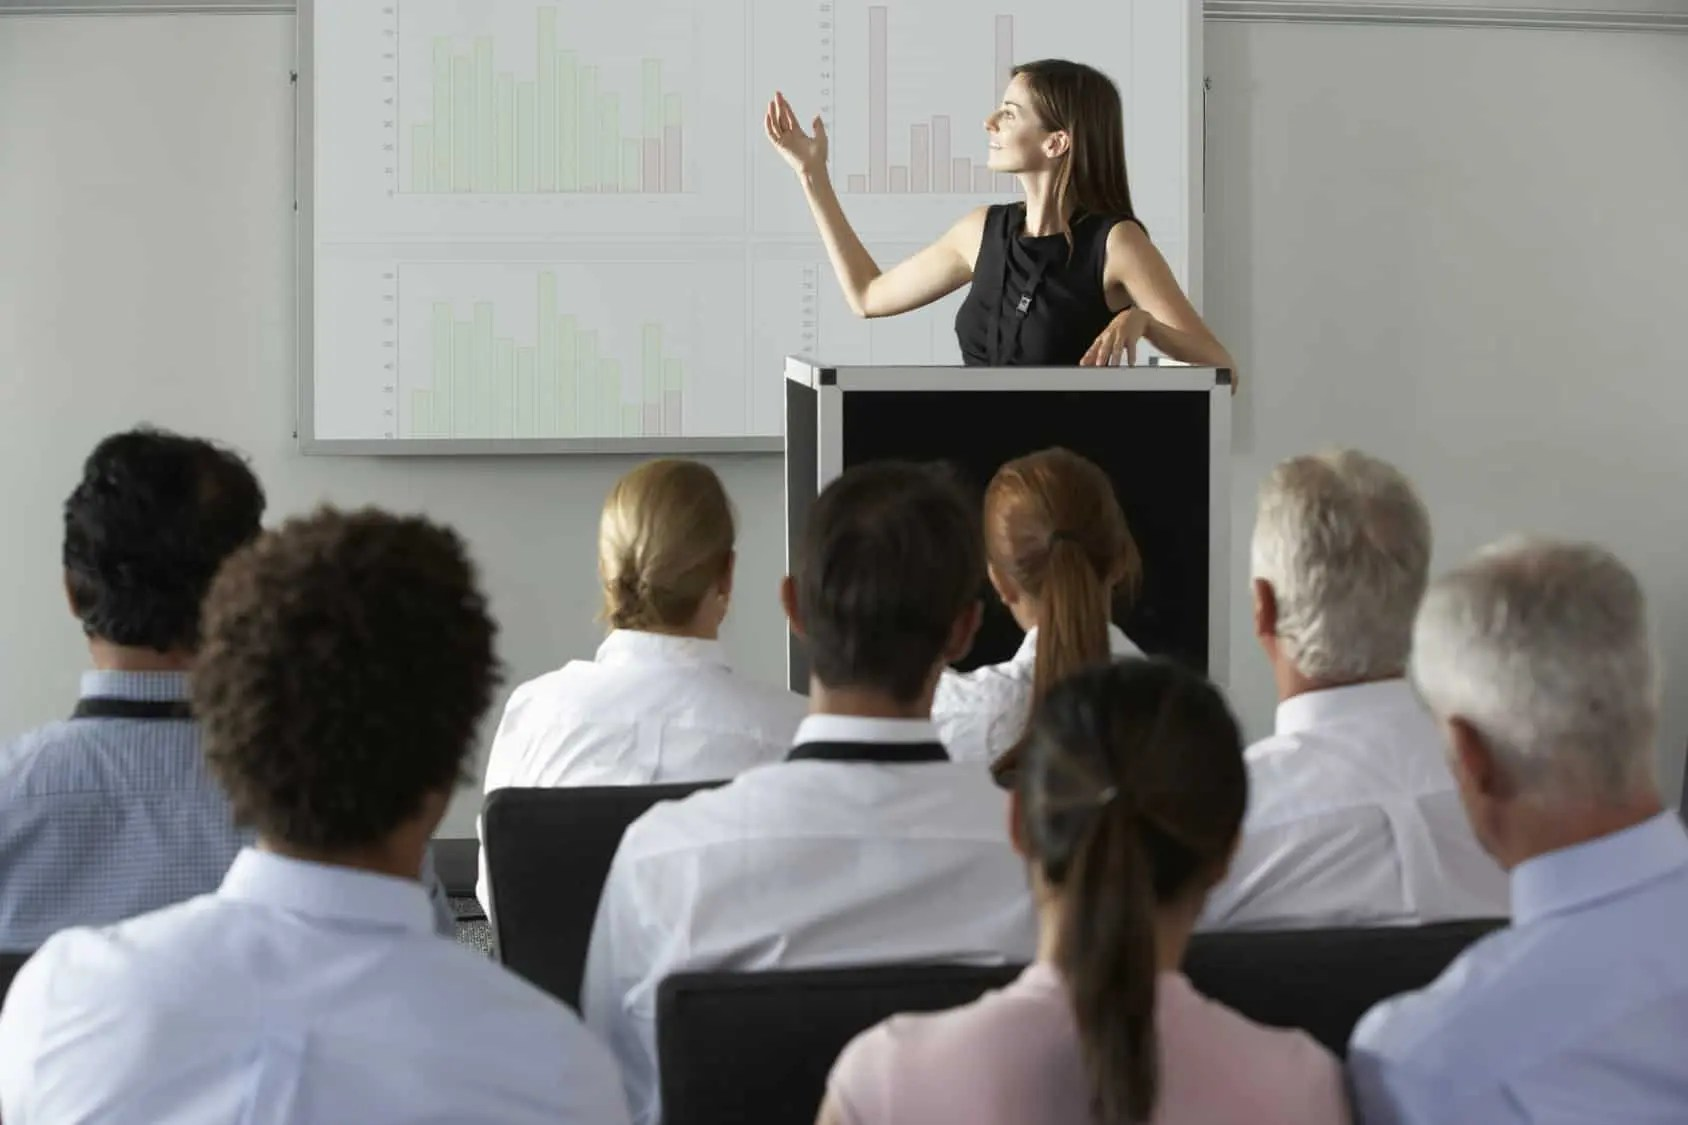 Presentation Skills  ELearning Training Course Materials  Training Resources UK Online